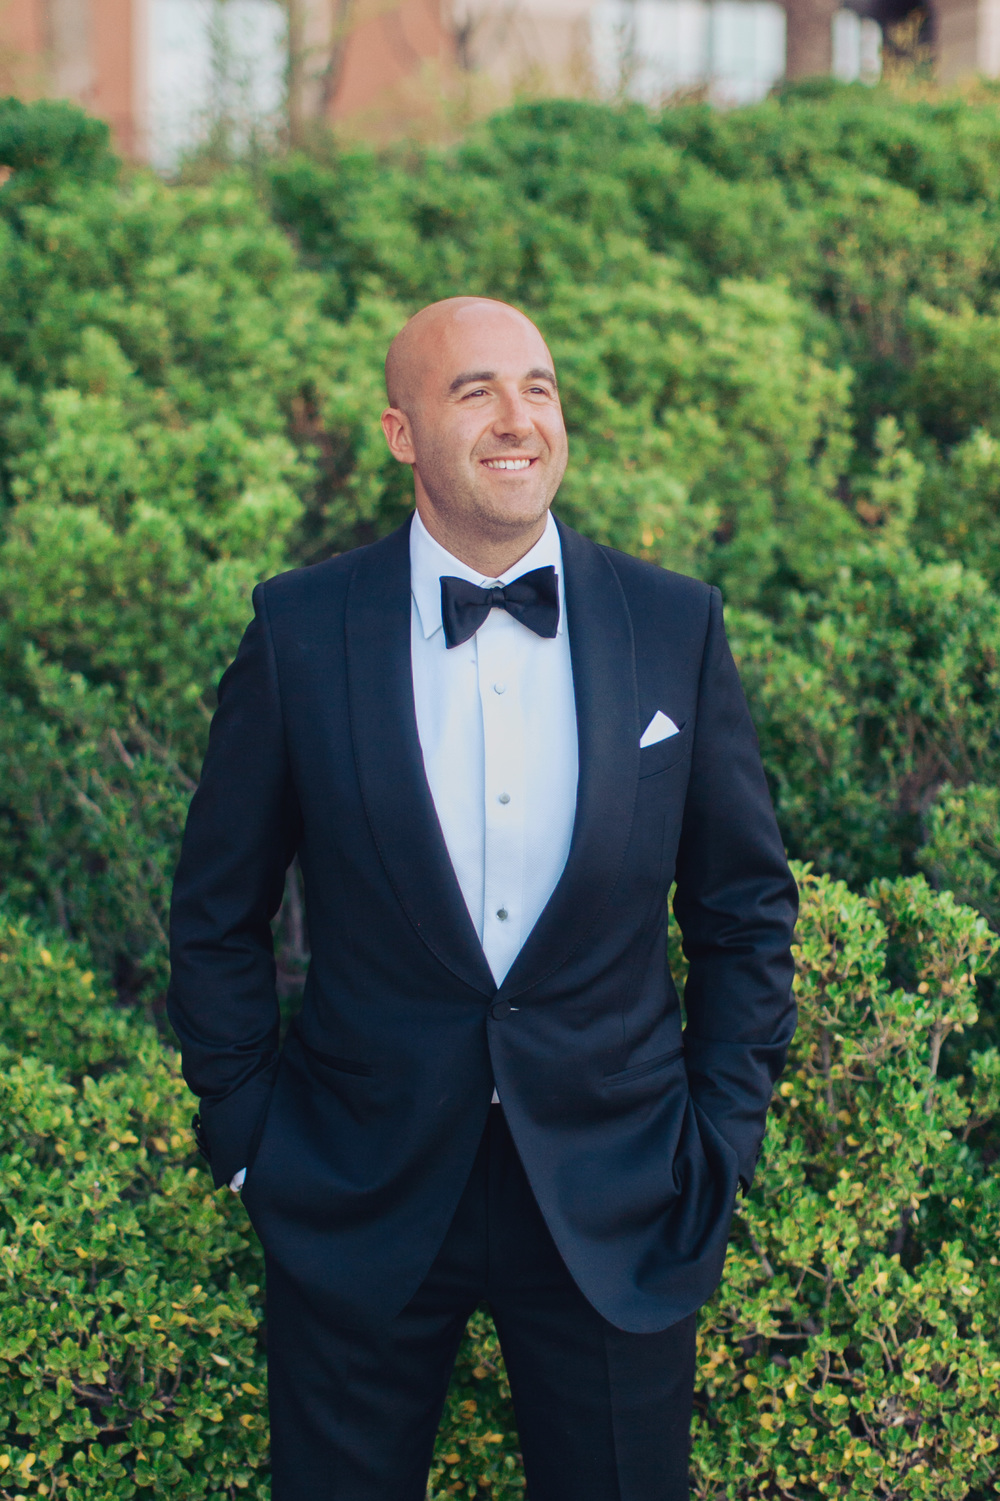 The groom wore a bespoke tuxedo by Zegna.      Las Vegas Wedding Planner Andrea Eppolito  |  Wedding at Lake Las Vegas  | White and Blu  sh and Grey Wedding | Luxury Wedding Las Vegas